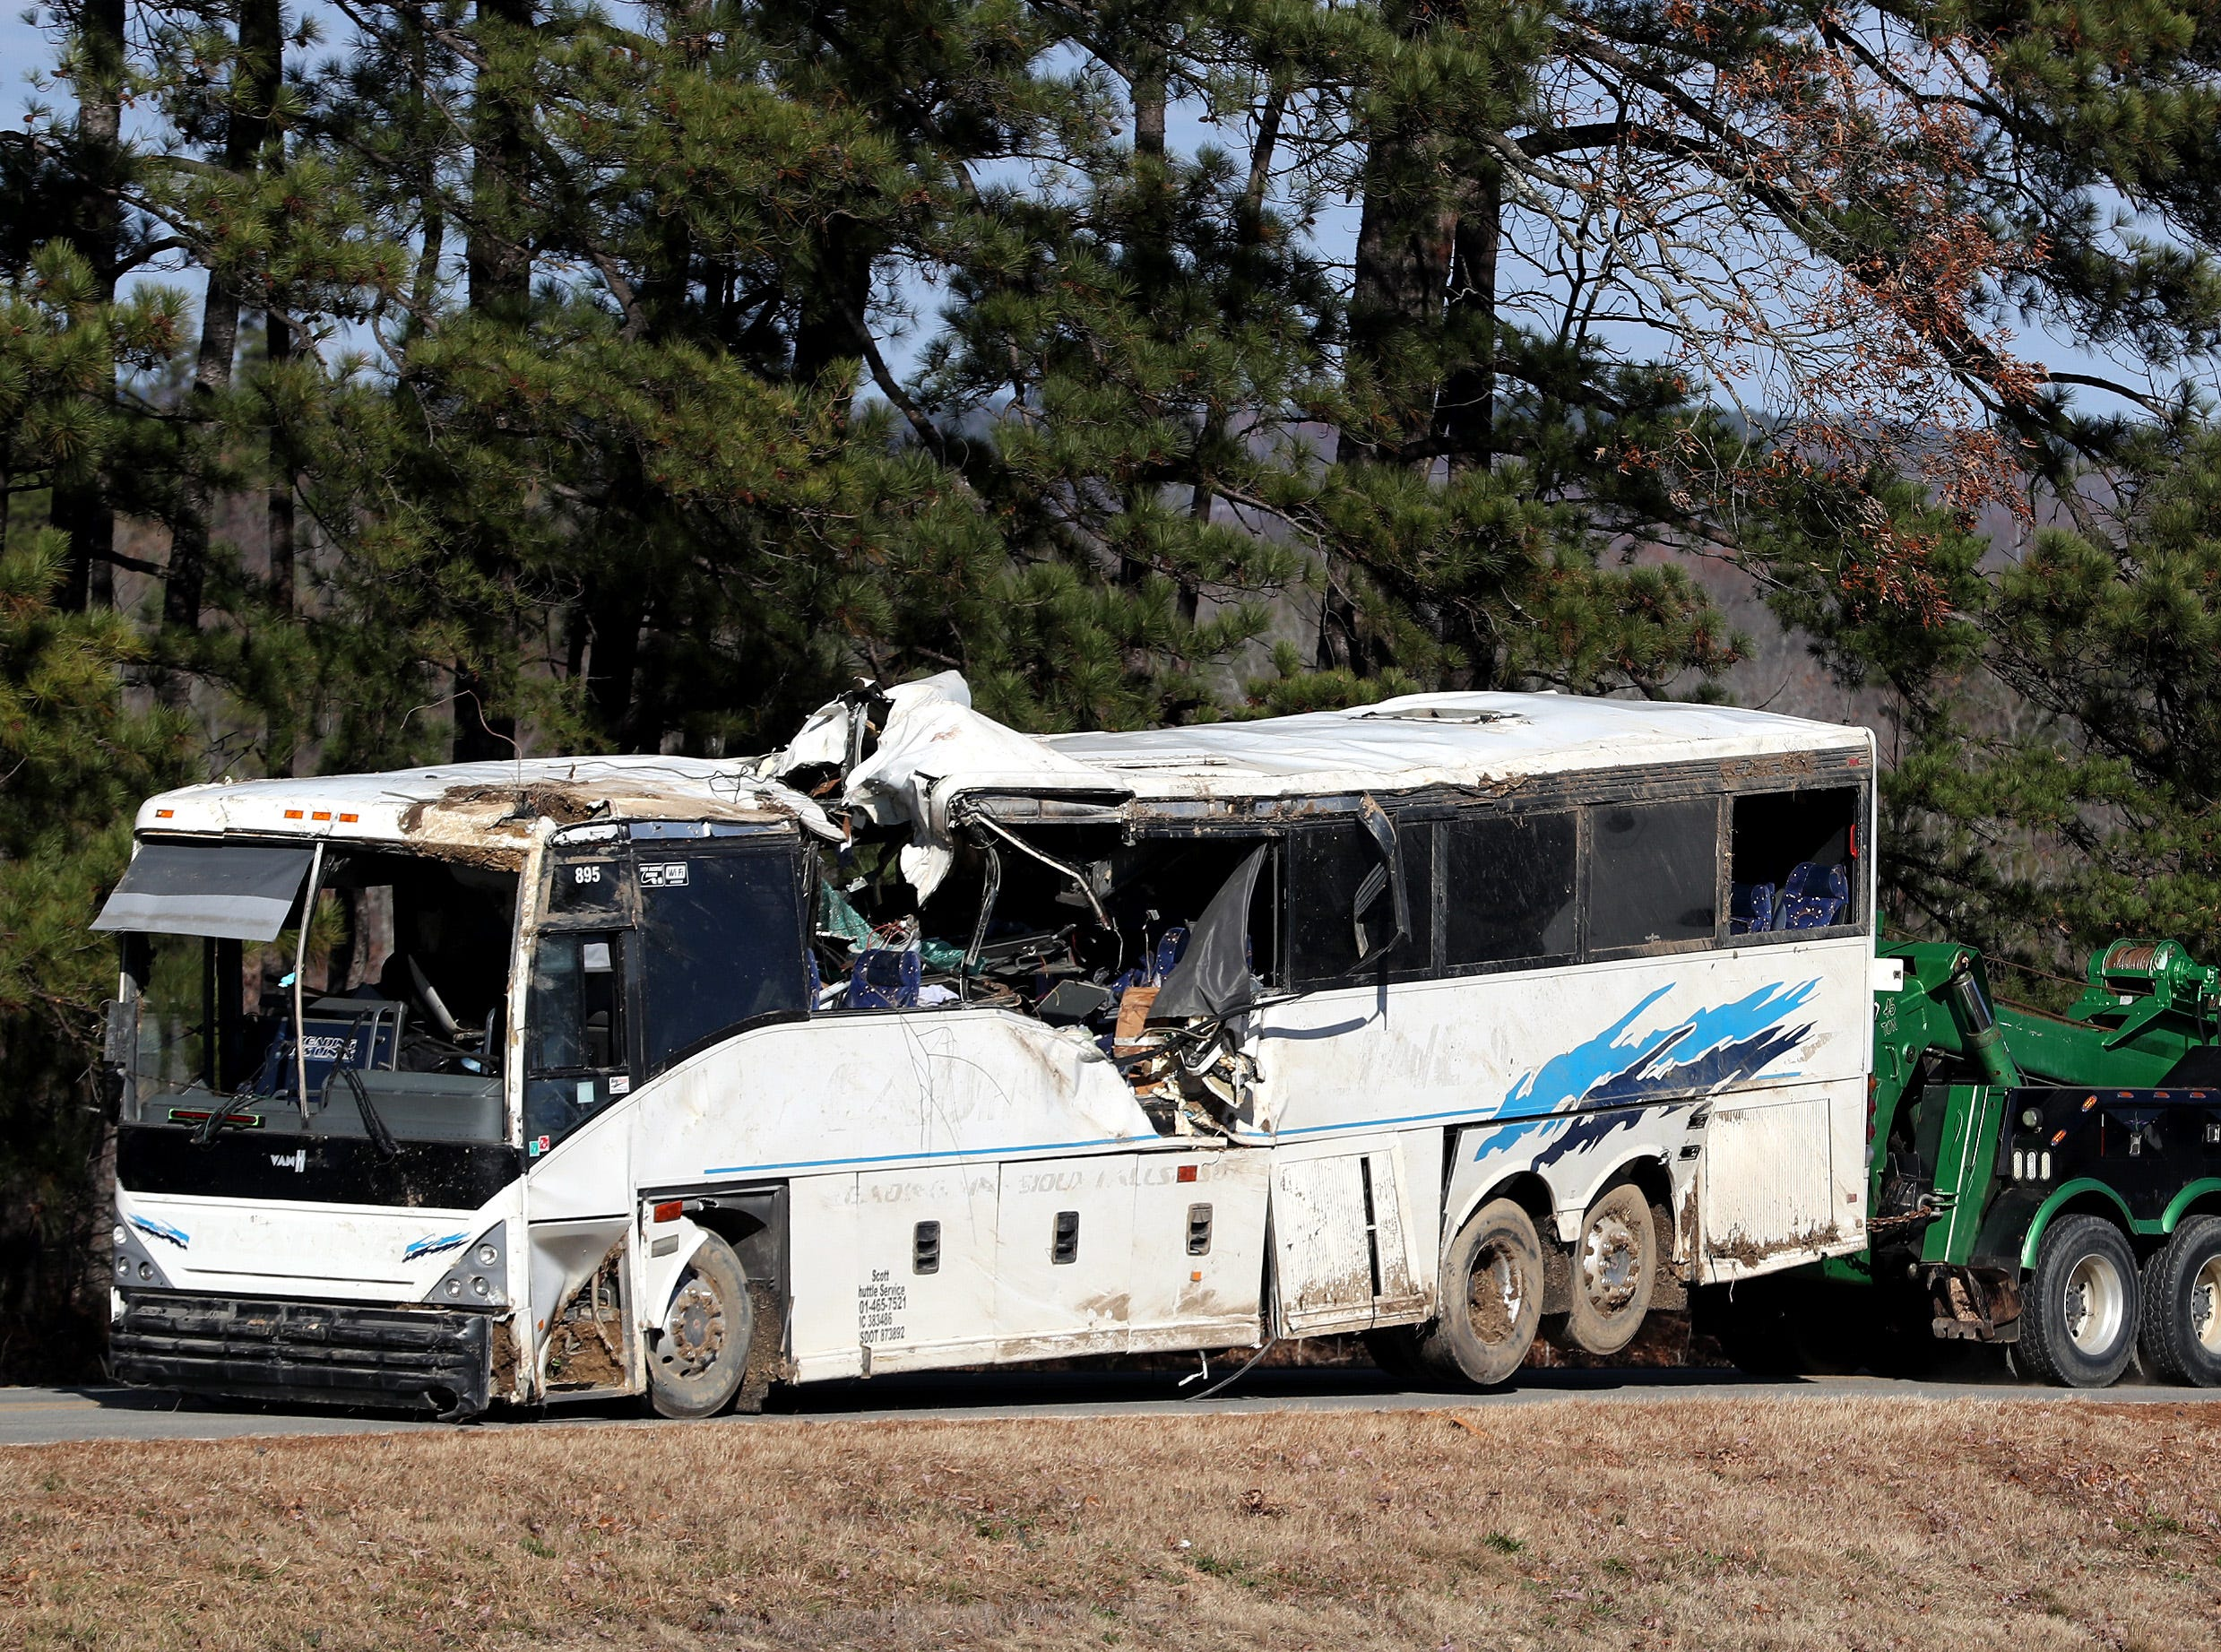 The bus that the football teams from Orange Mound that crashed outside Benton, Arkansas, is towed away from the scene of the accident Monday afternoon, Dec. 3, 2018.